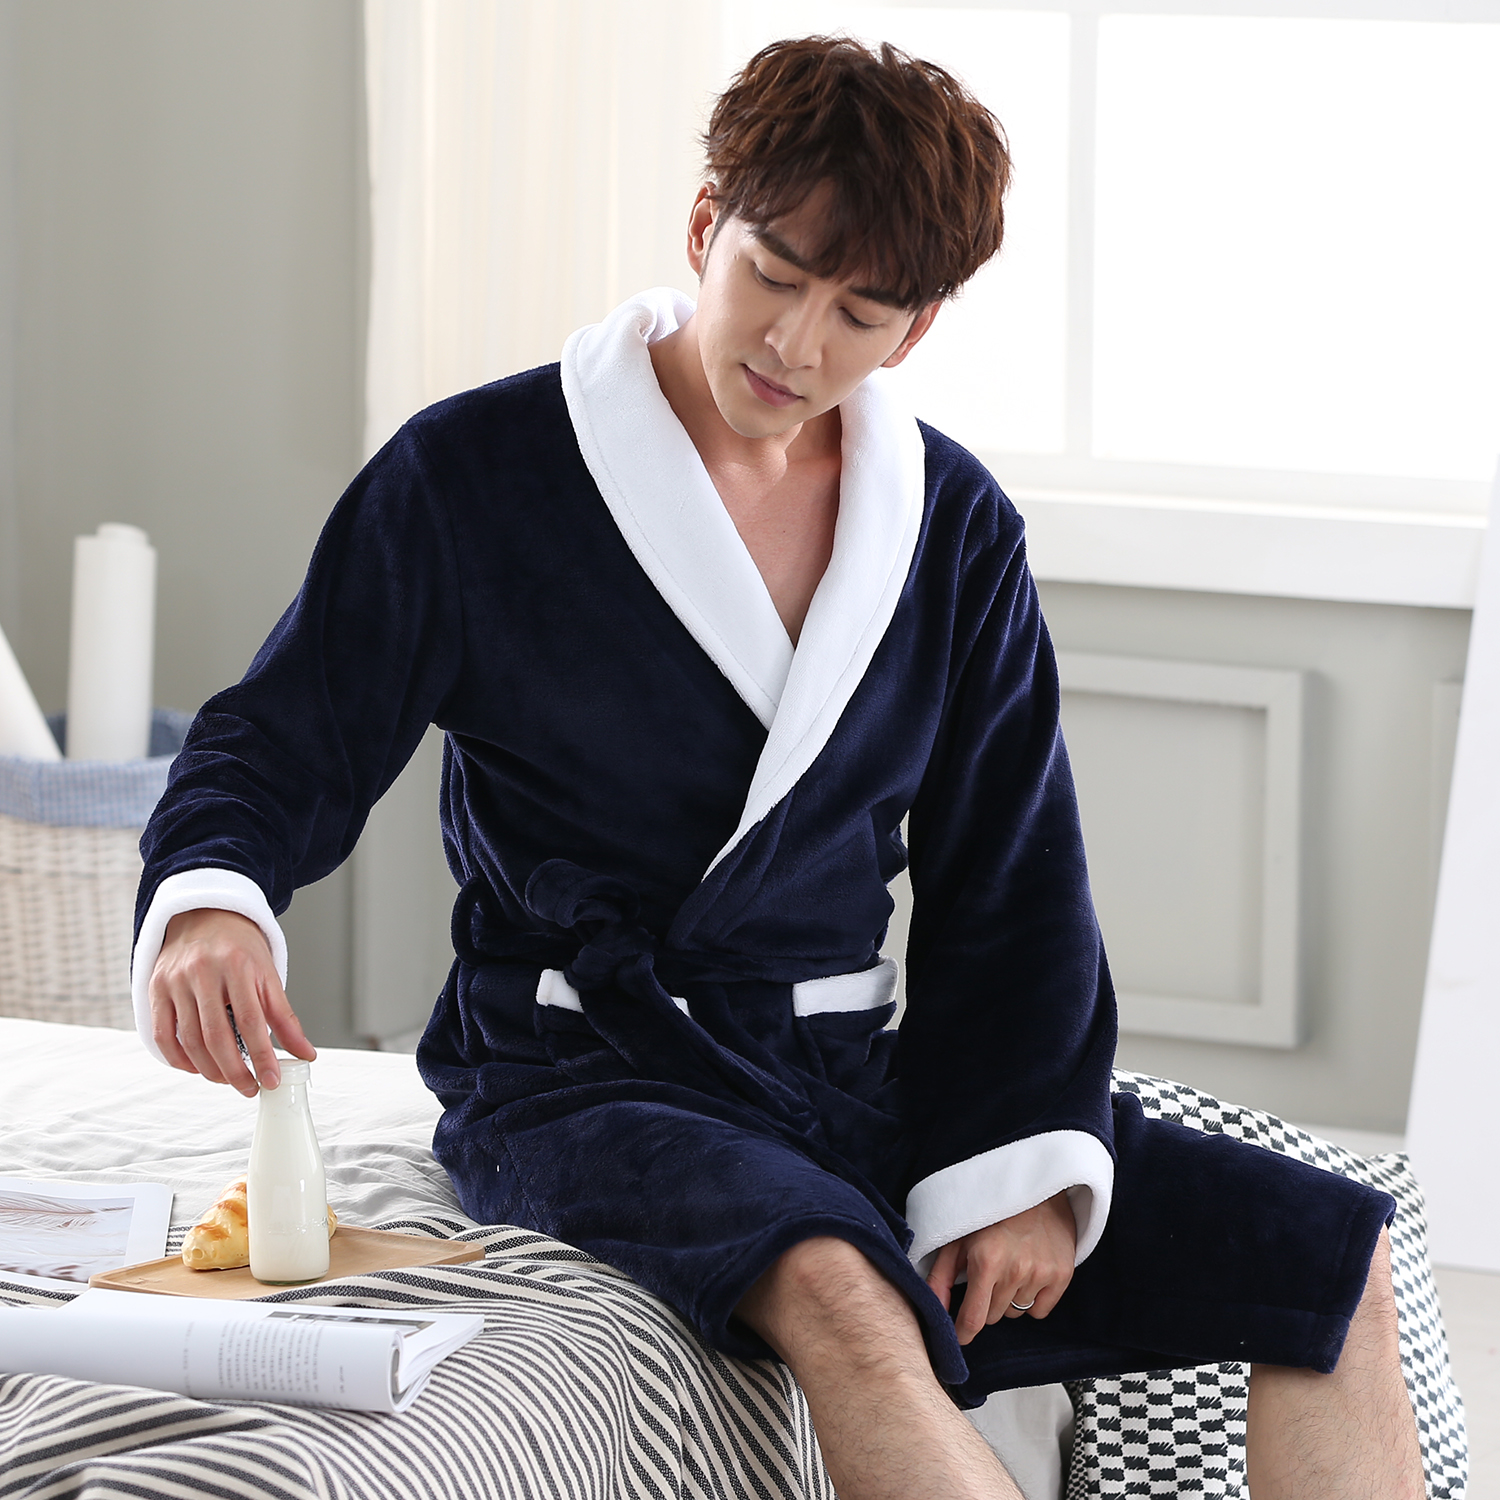 Kimono Robe Gown Bathrobe-Gown Sleepwear Intimate Winter Nightwear Men Casual Flannel title=